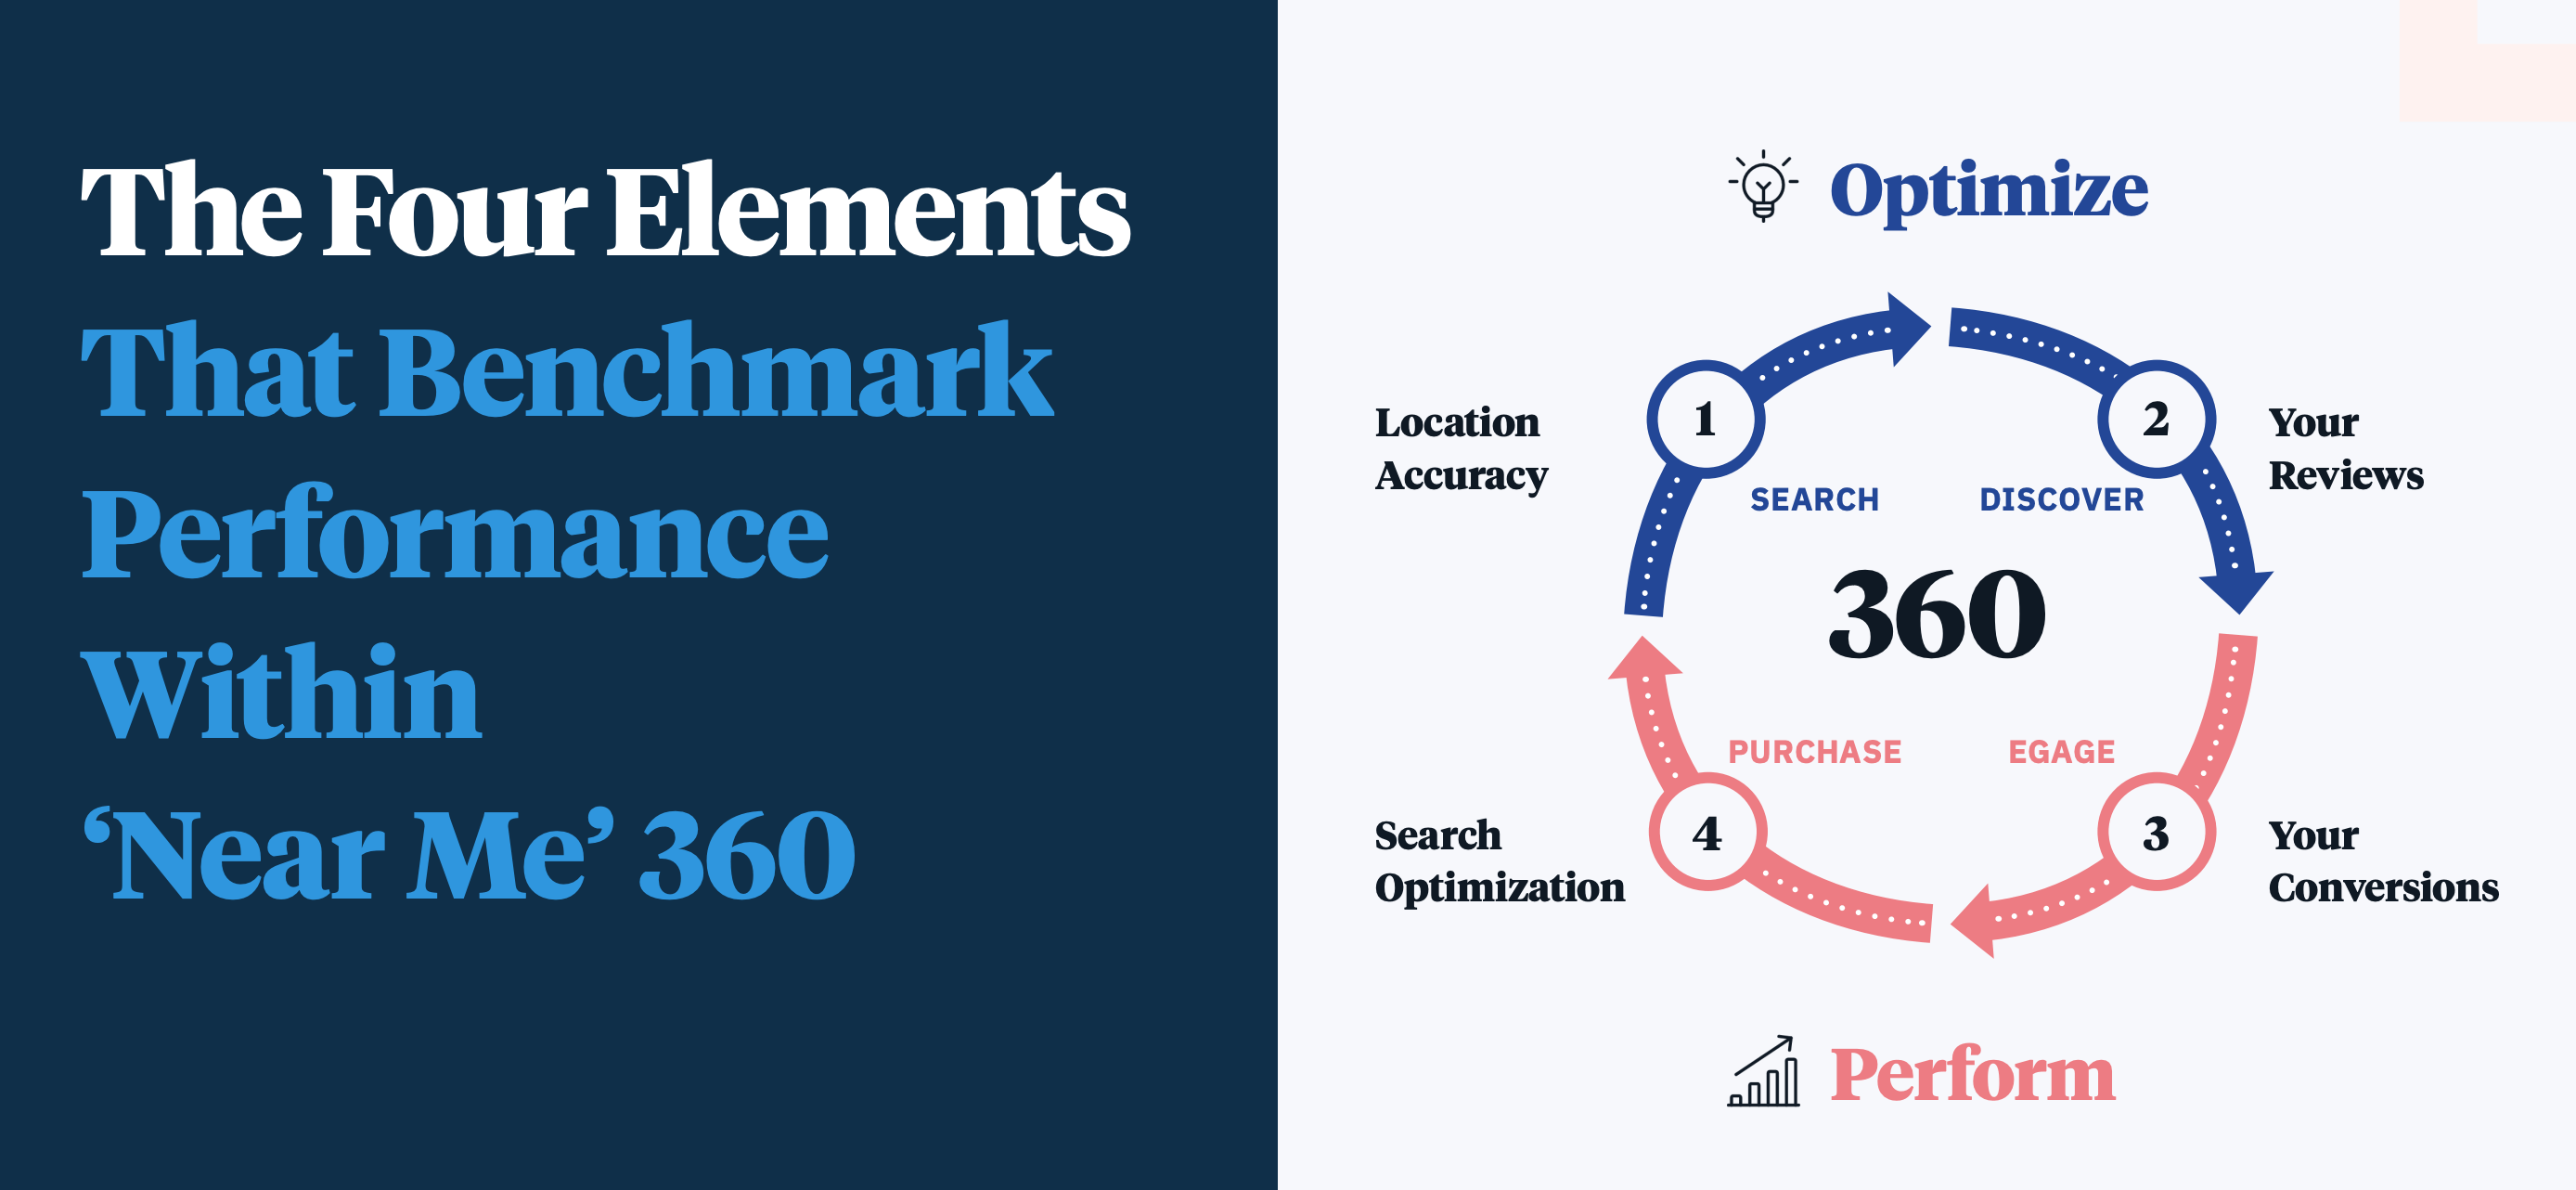 benchmark performance with 'Near Me' 360